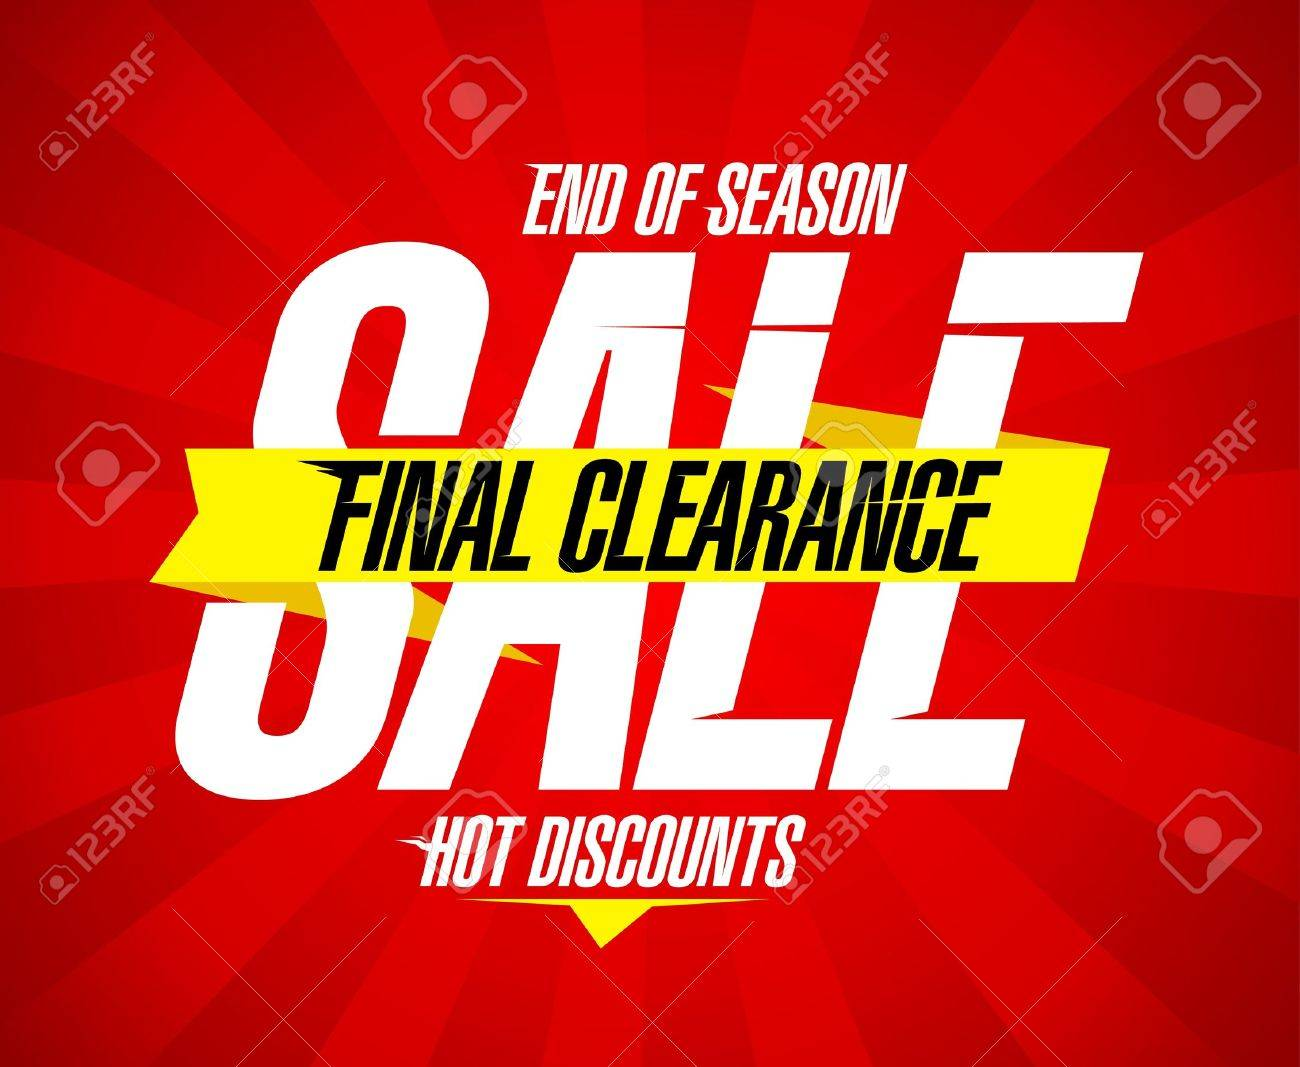 final clearance design template royalty cliparts final clearance design template stock vector 21400812